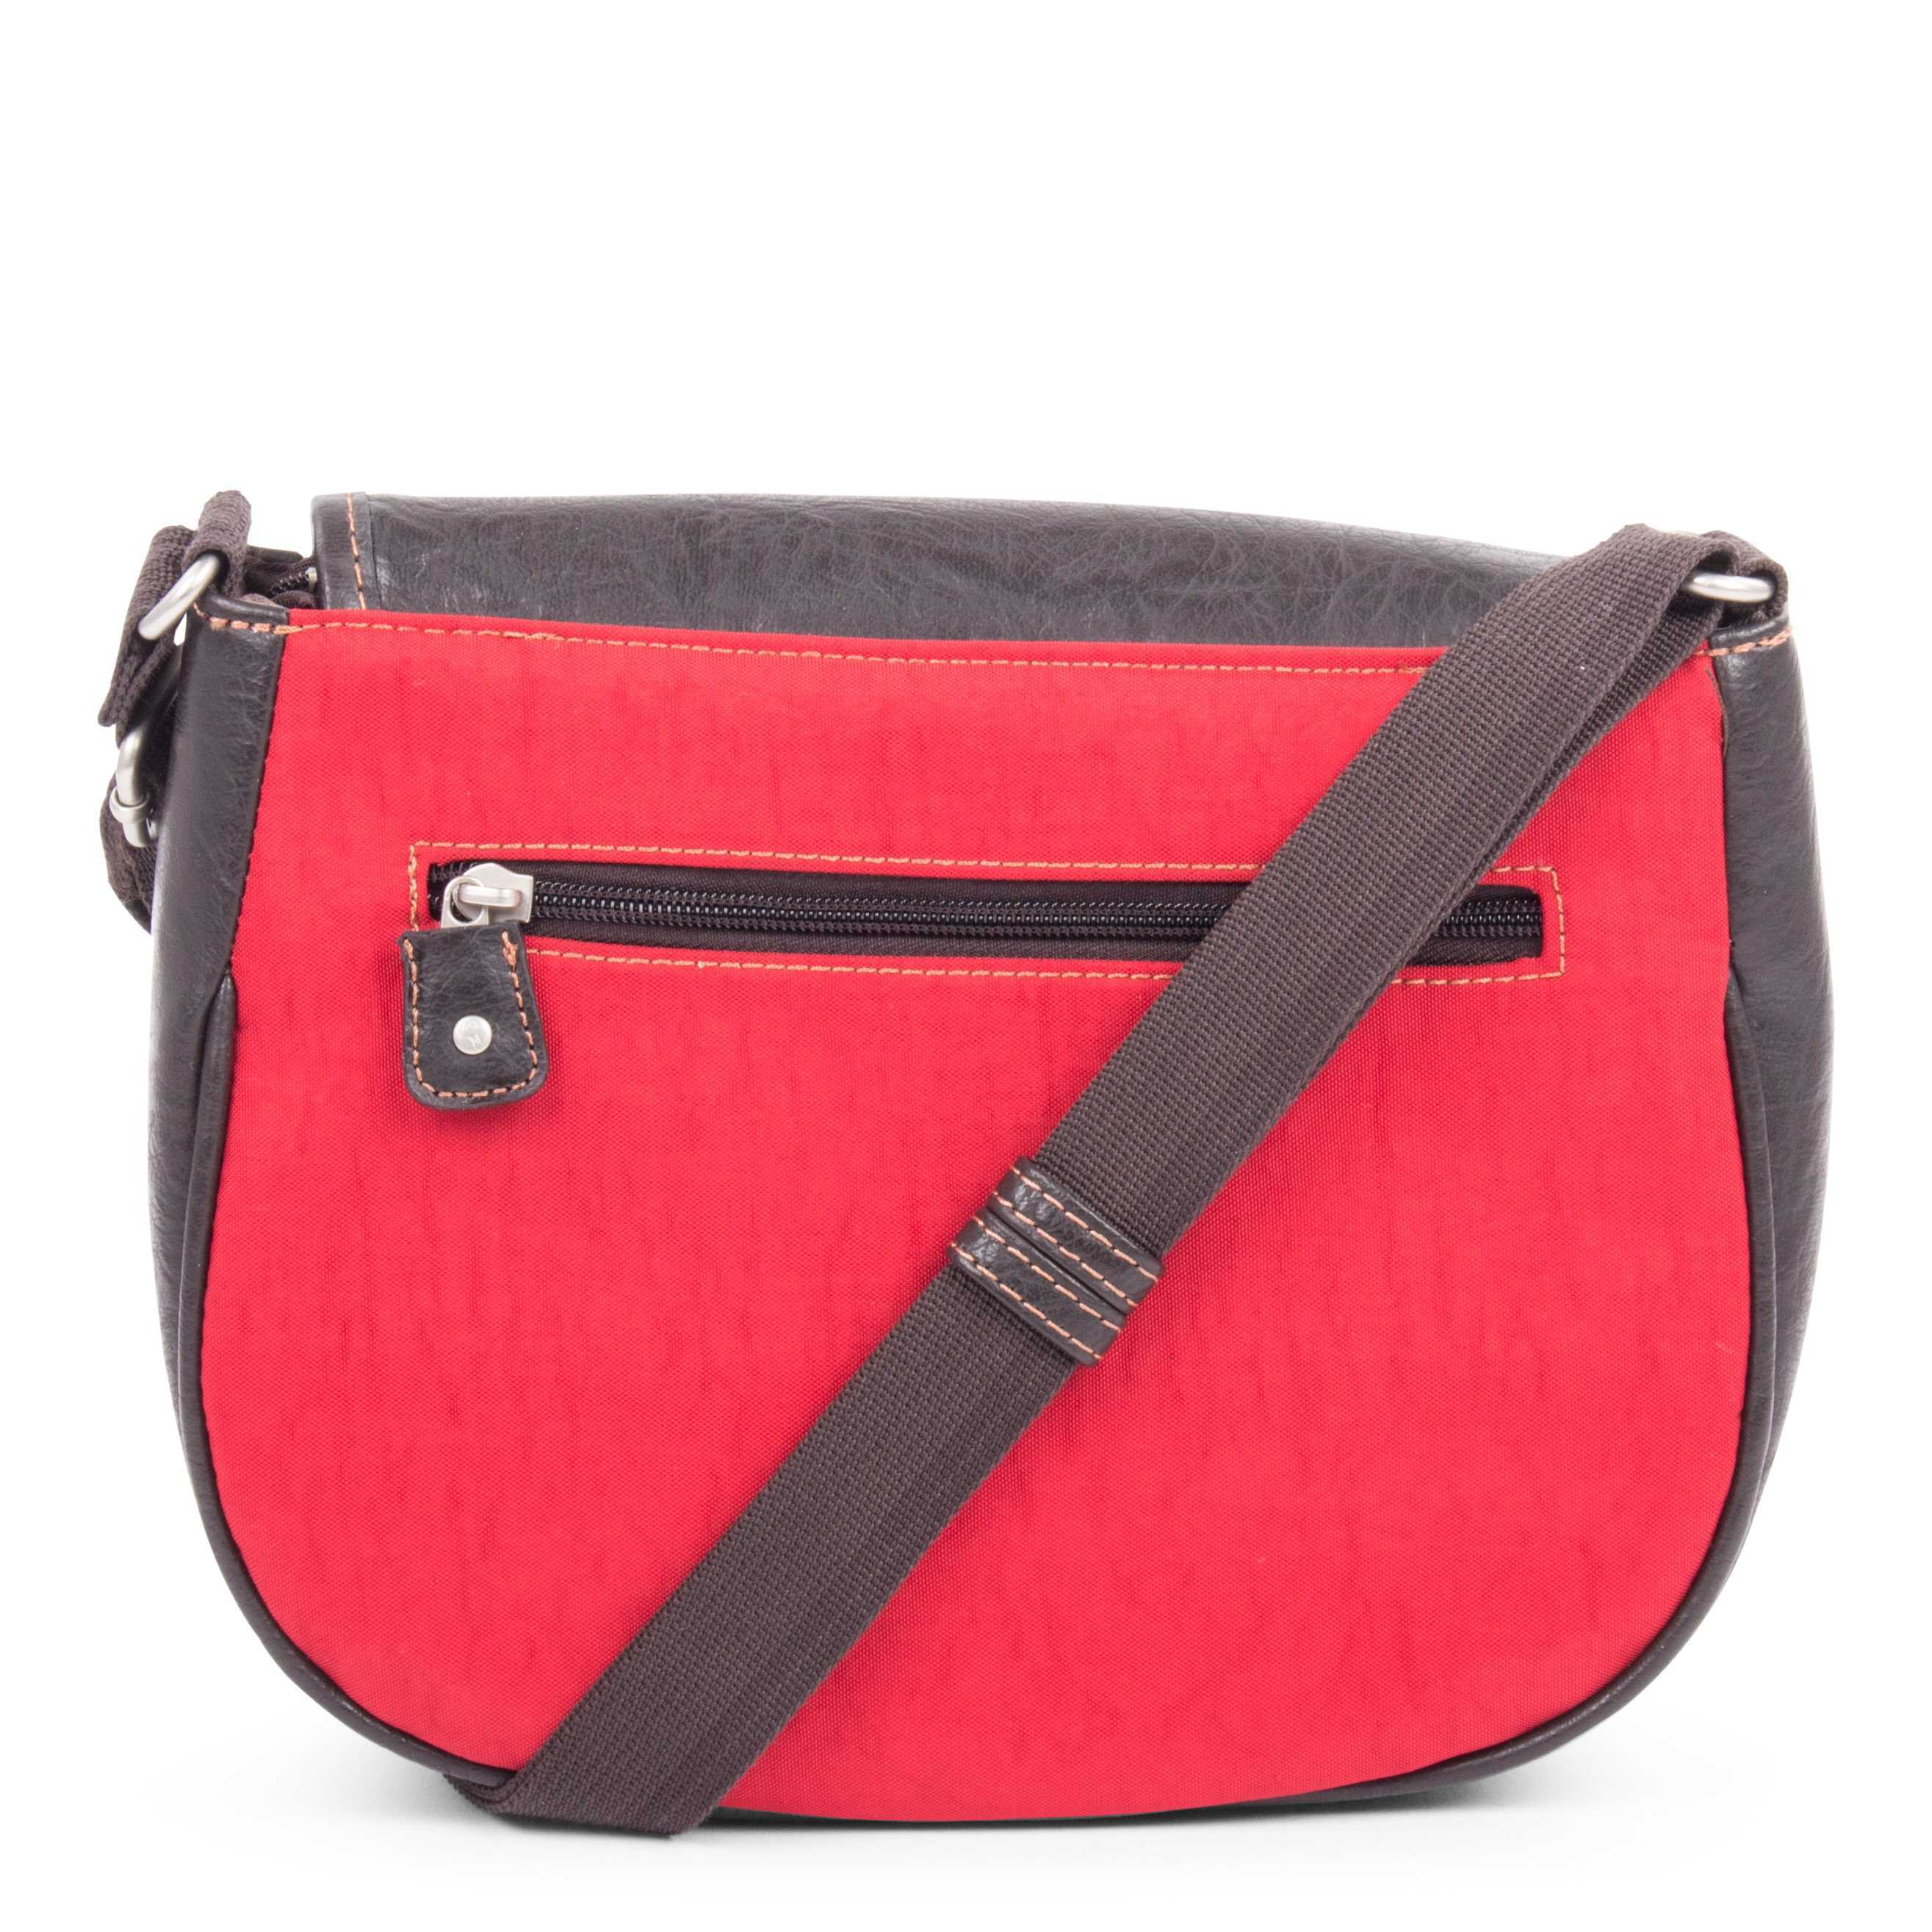 244f319f7e8d Shop Mouflon Feather Messenger Bag - Free Shipping Today - Overstock -  14289120